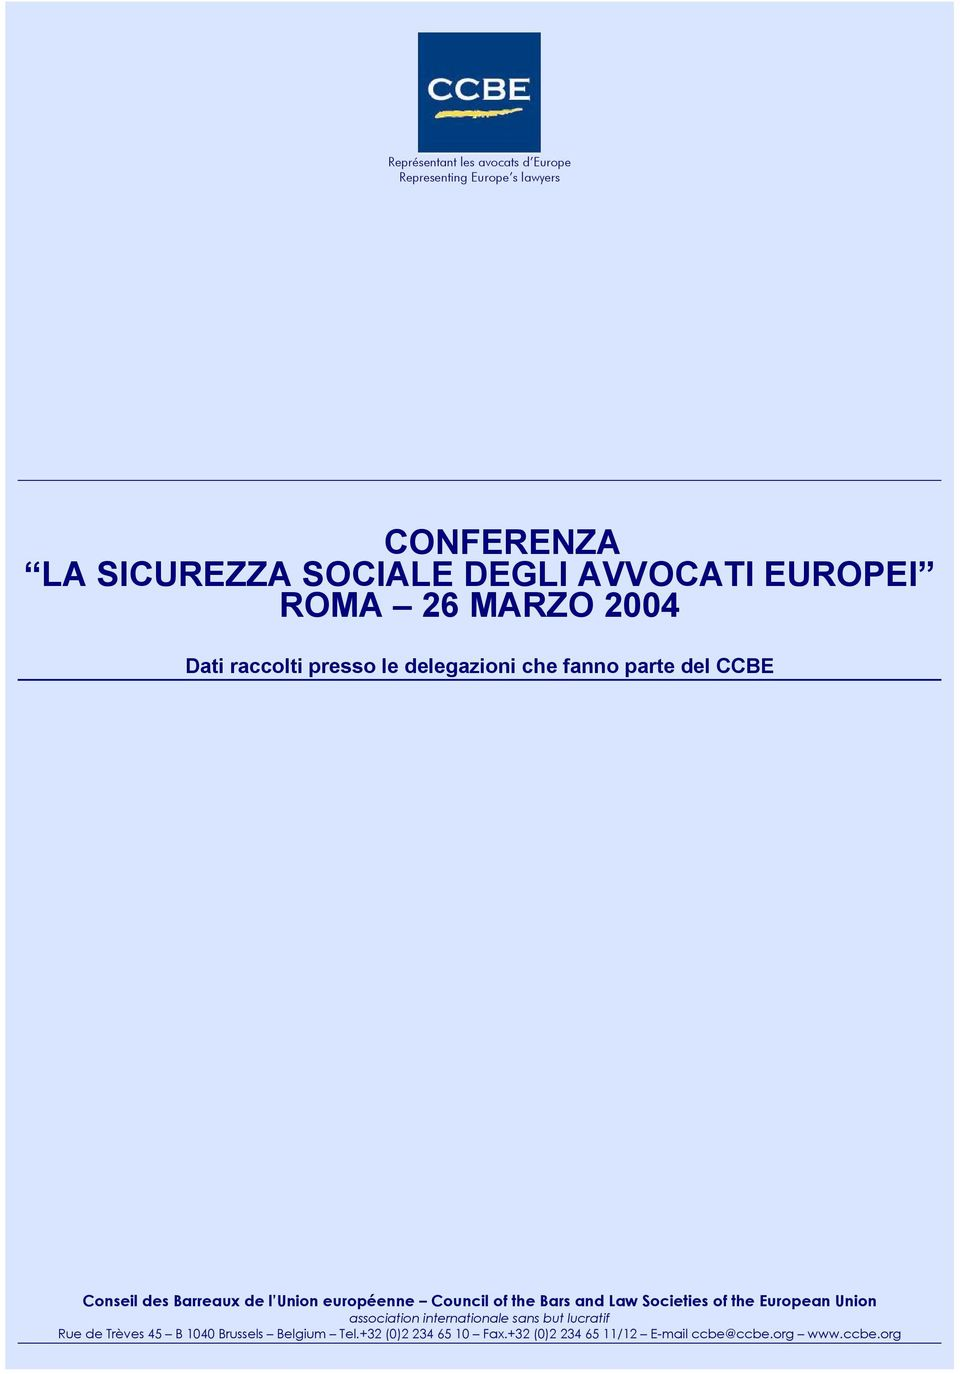 européenne Council of the Bars and Law Societies of the European Union association internationale sans but lucratif